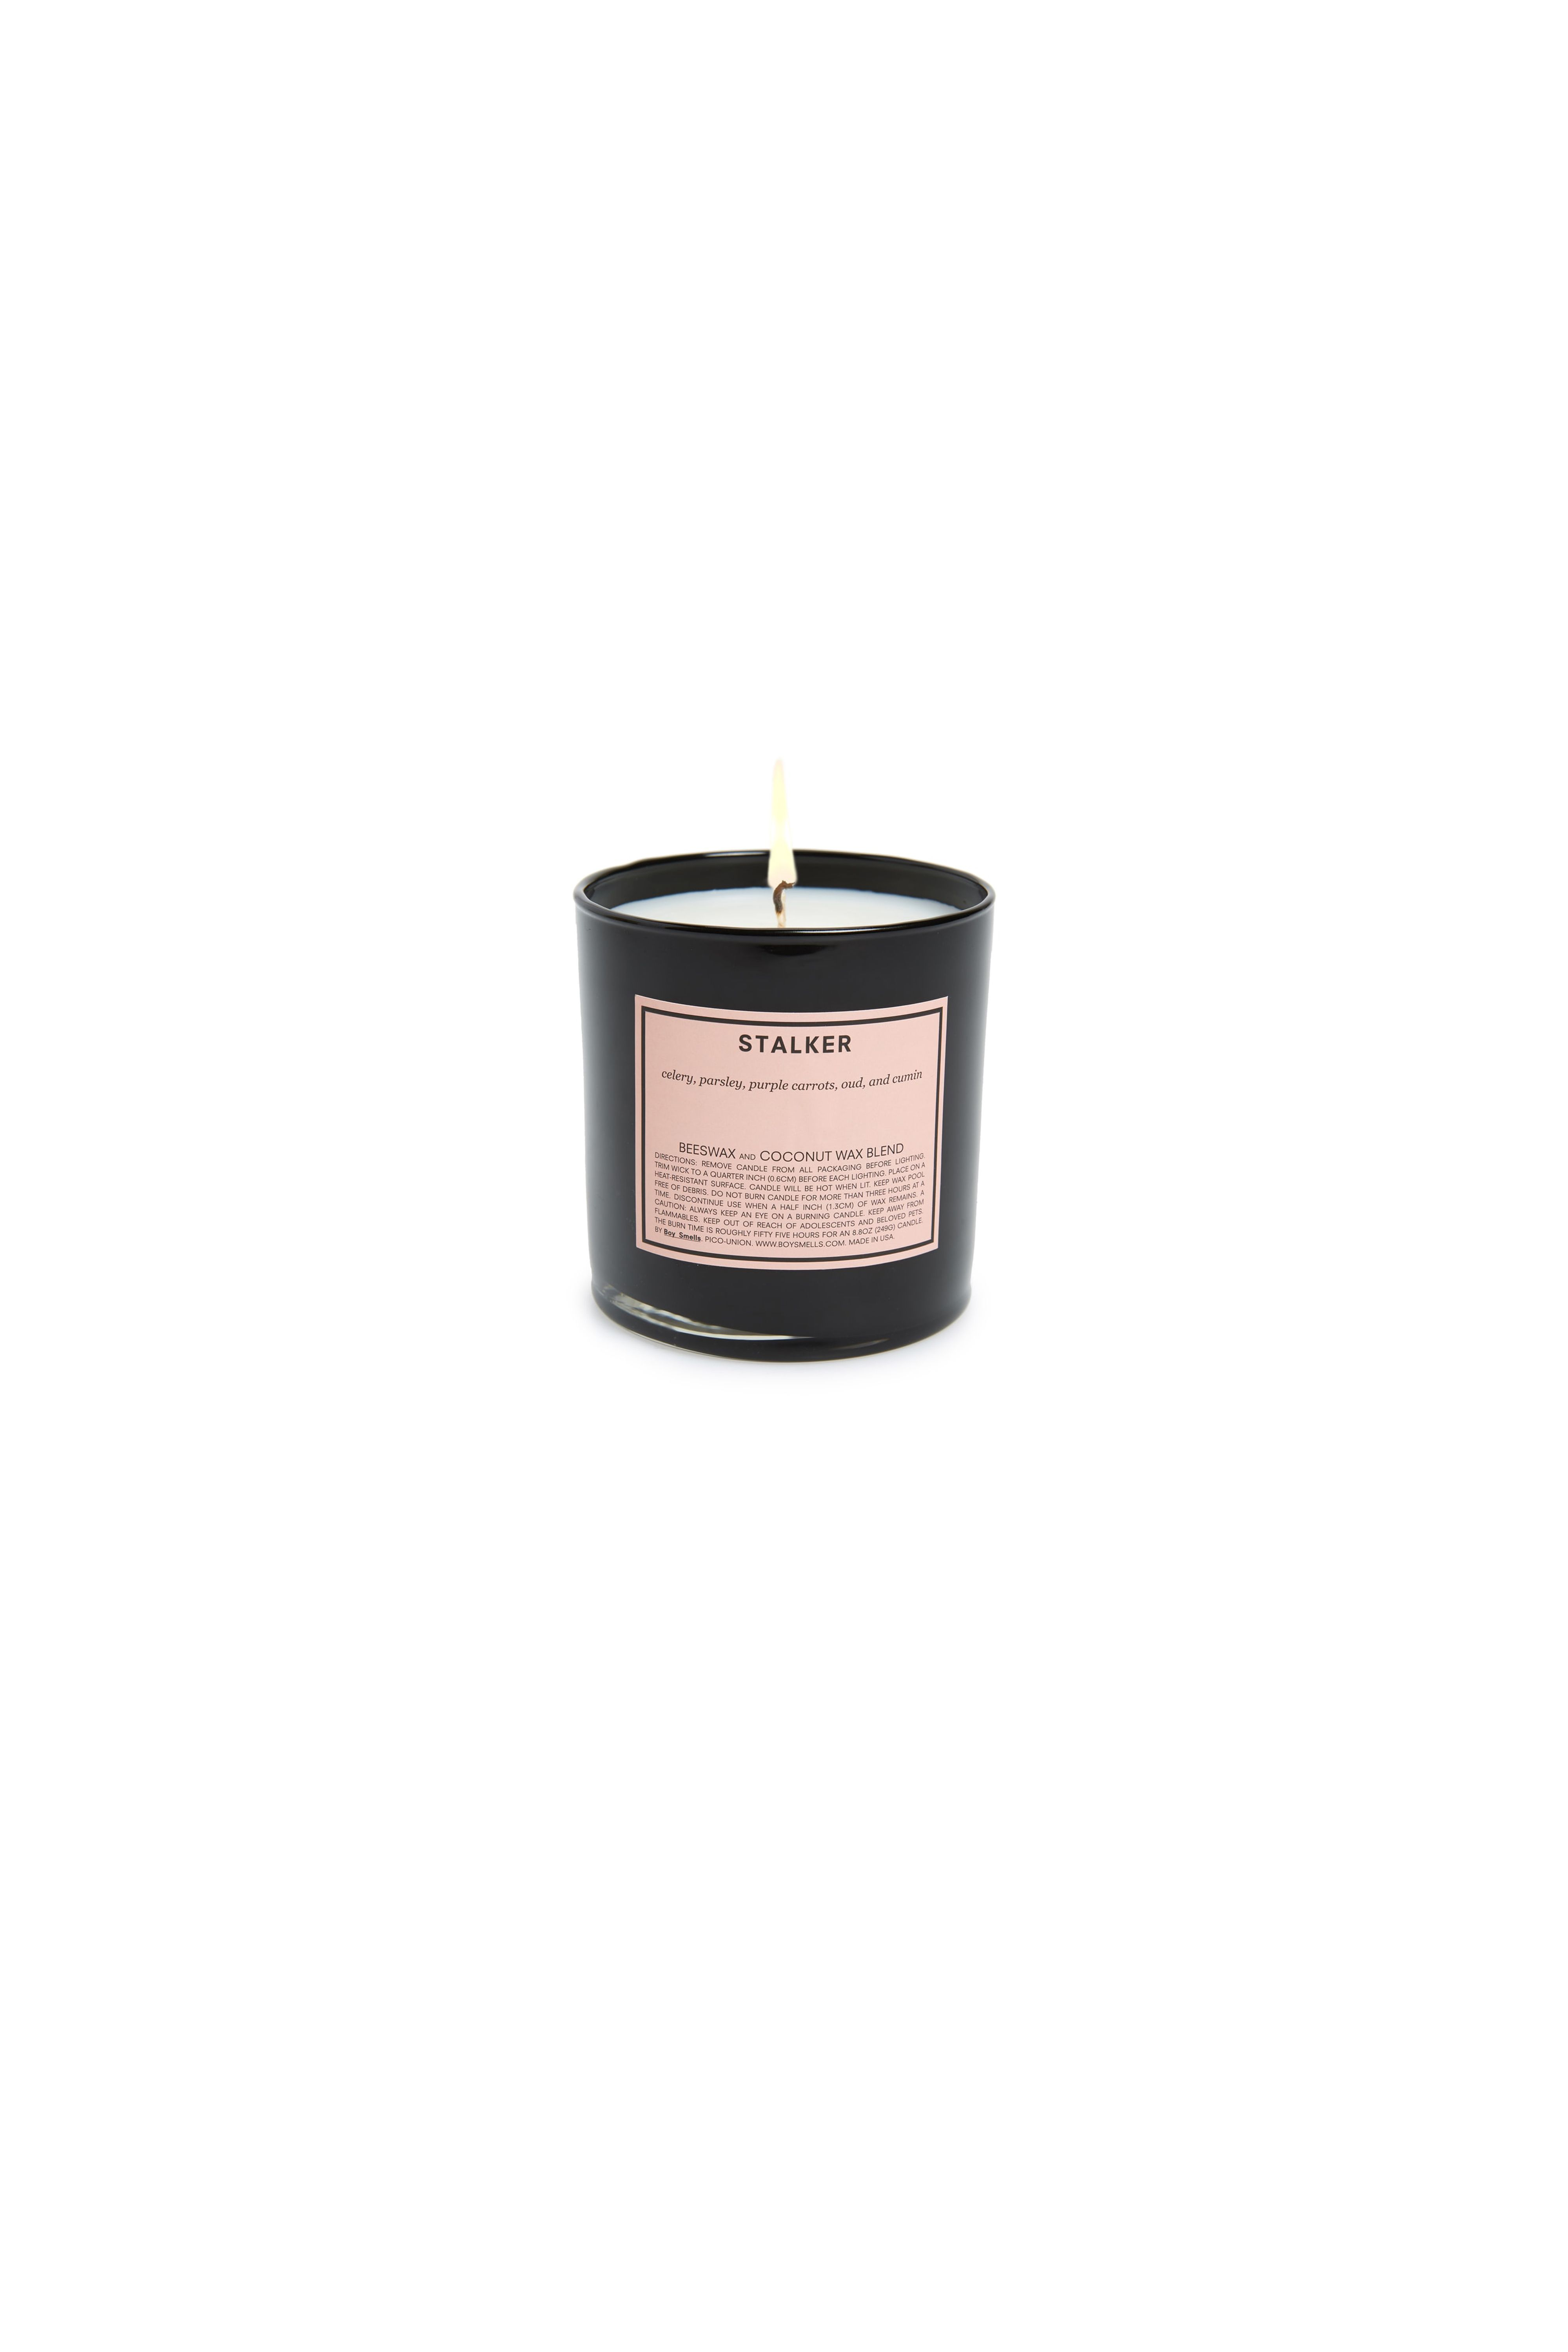 20+ Best Fall Candles - Autumn Fragrance Candles